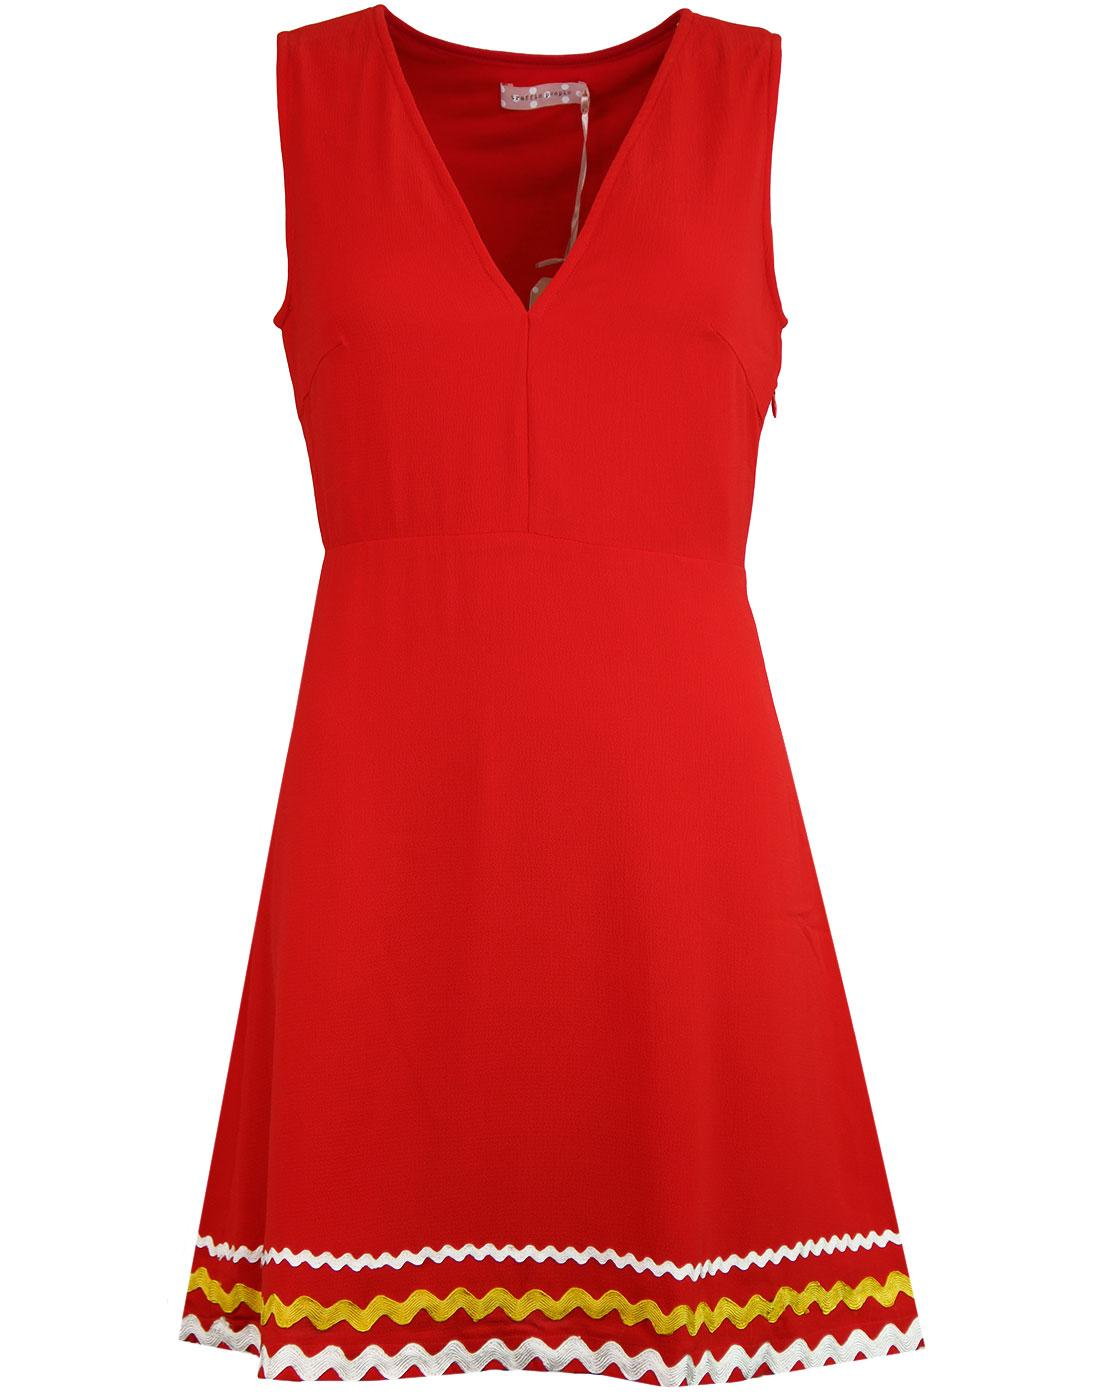 Sweet Promises TRAFFIC PEOPLE 60s Mod Dress RED